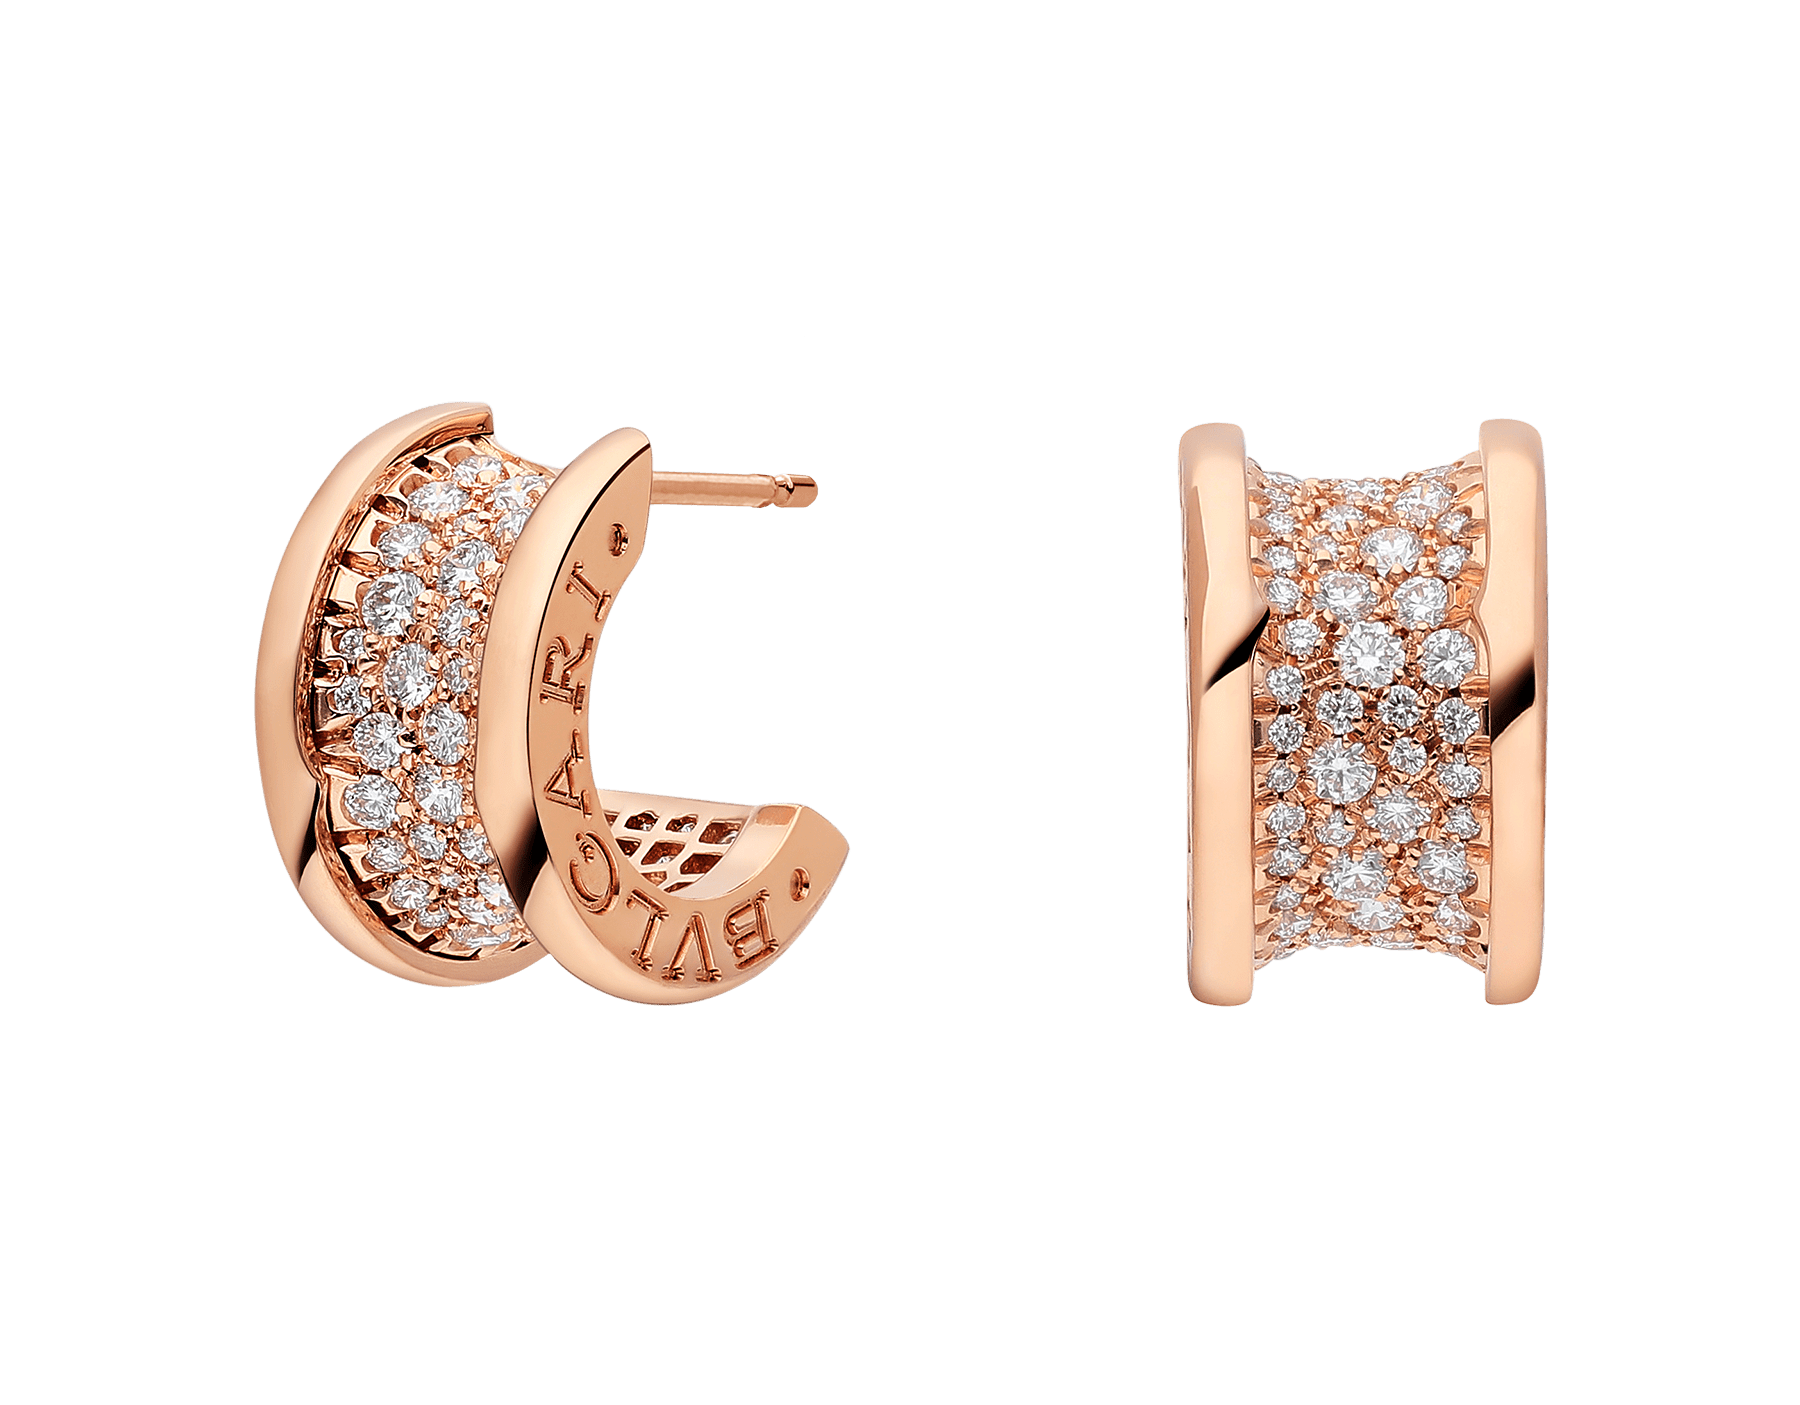 B.zero1 earrings in 18 kt rose gold set with pavé diamonds on the spiral. 347814 image 1